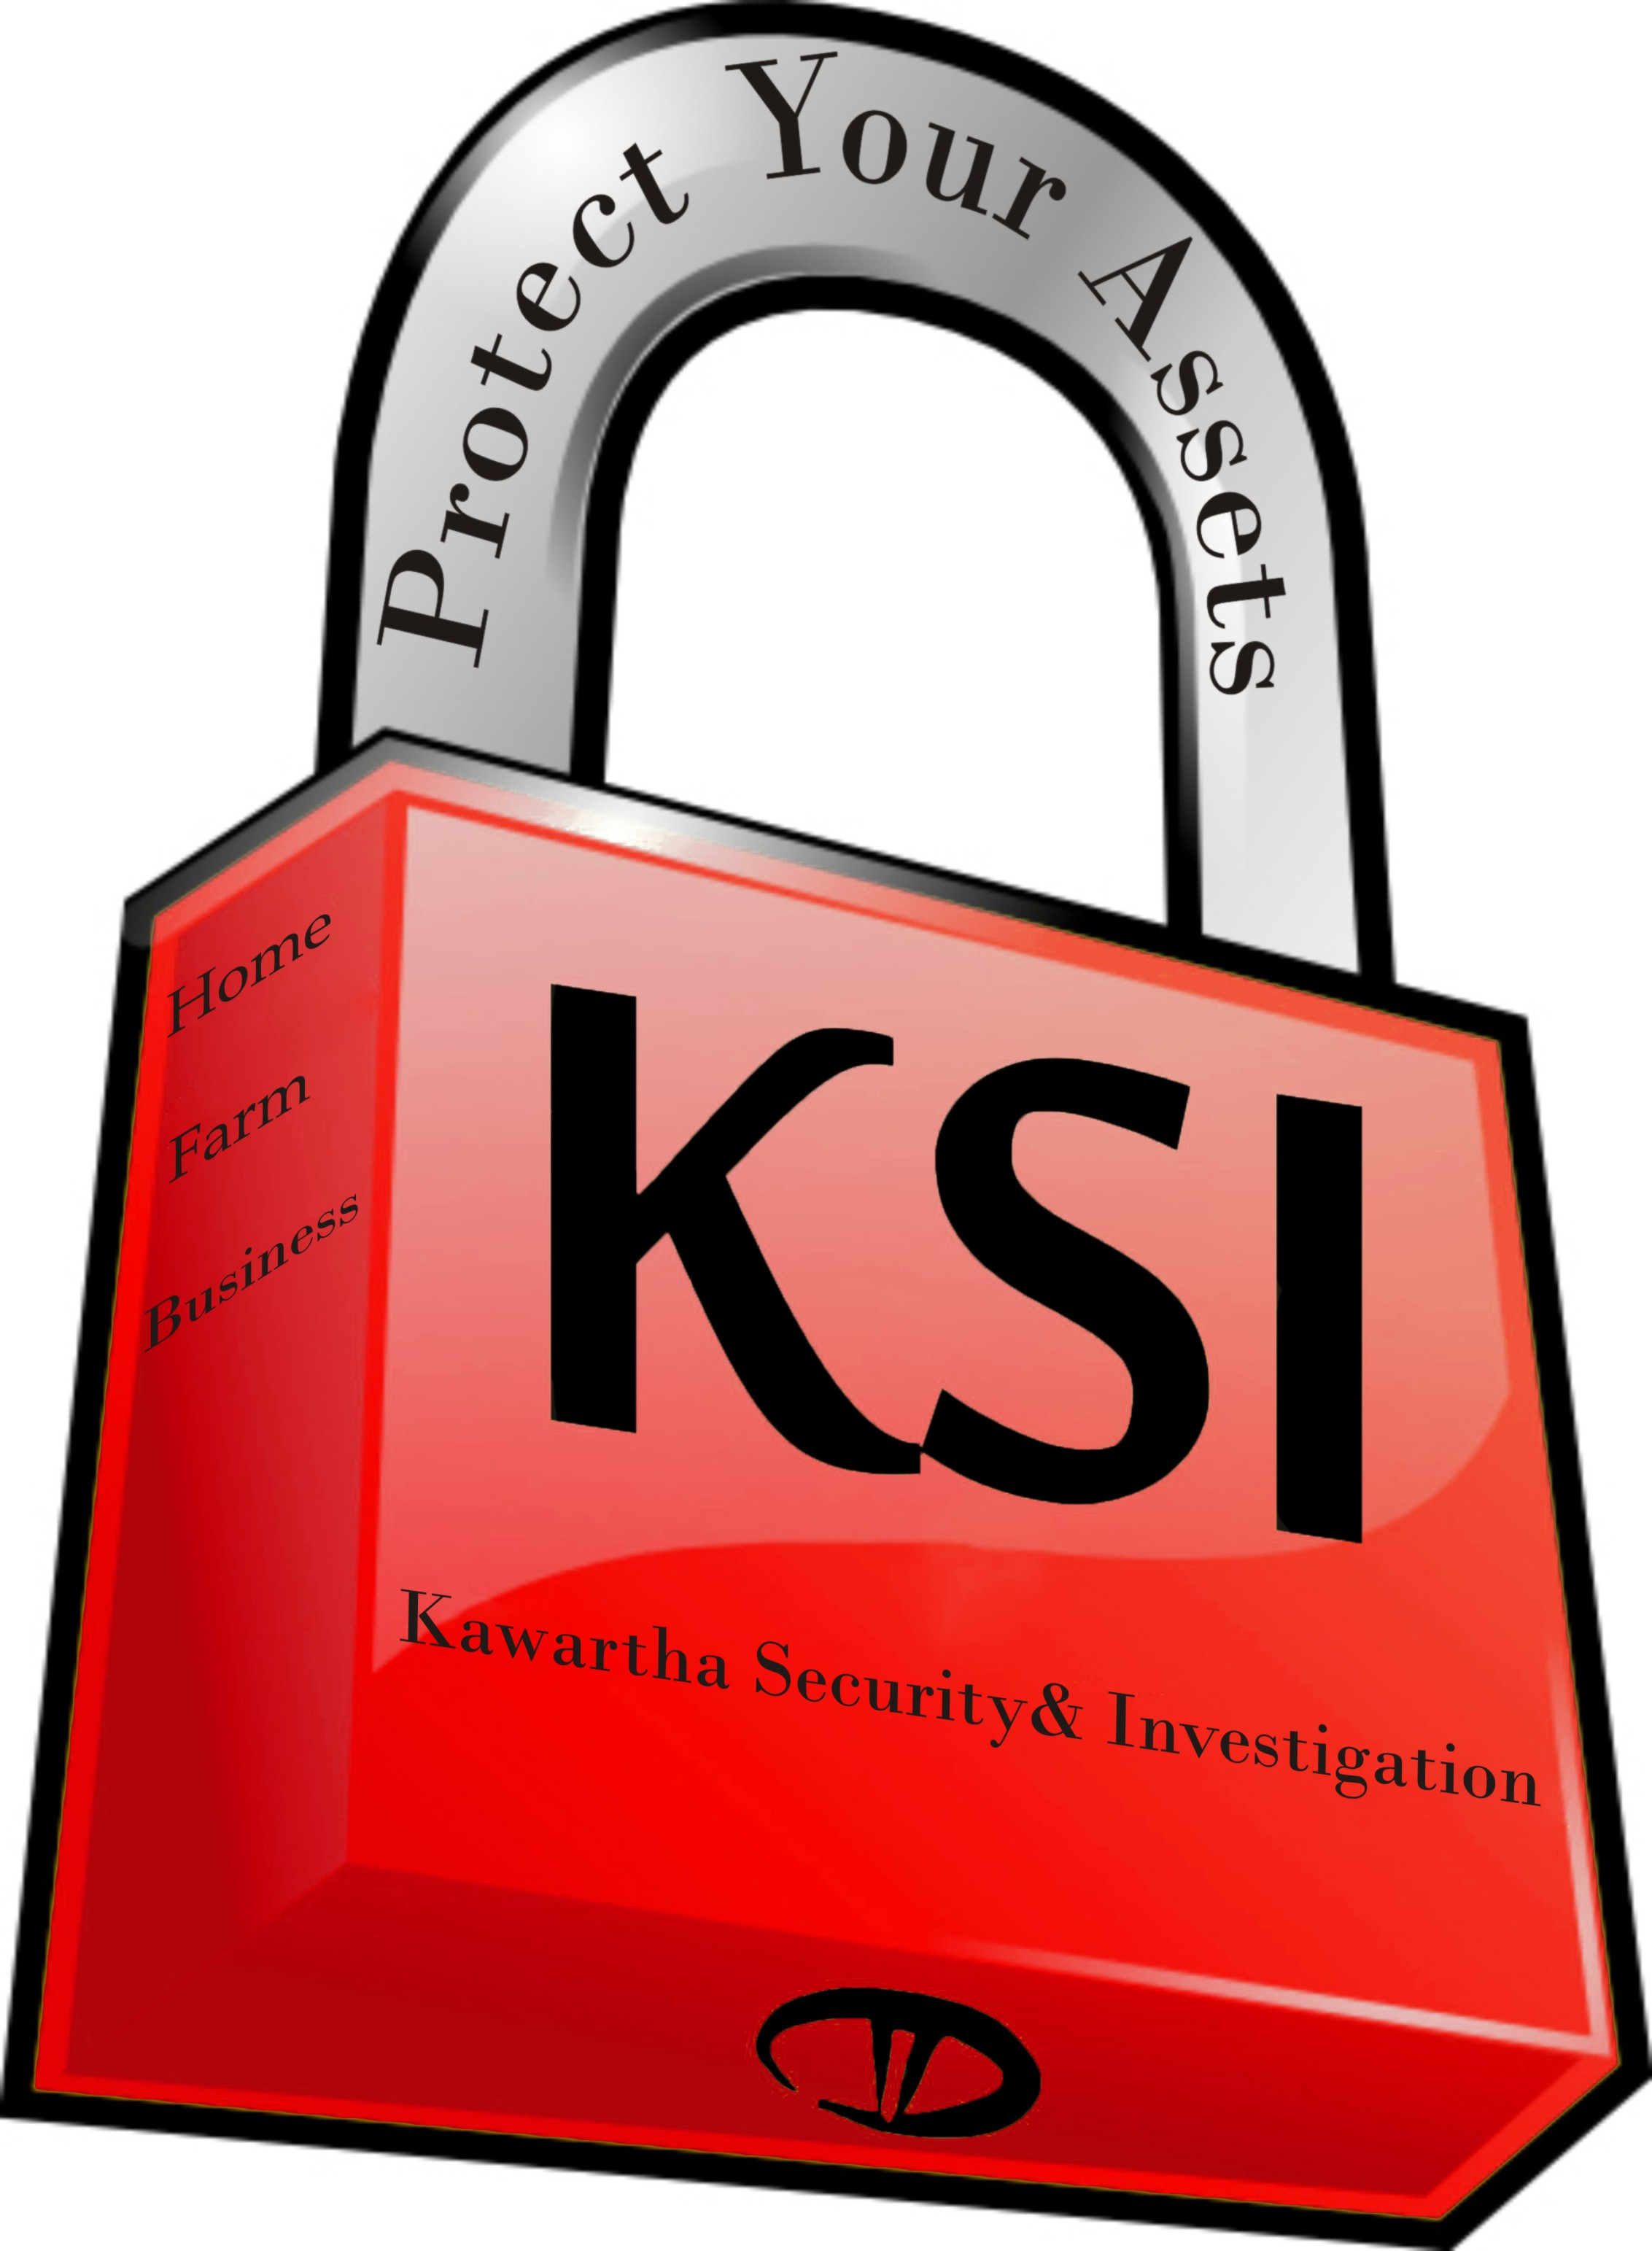 Kawartha Security and Investigations company logo